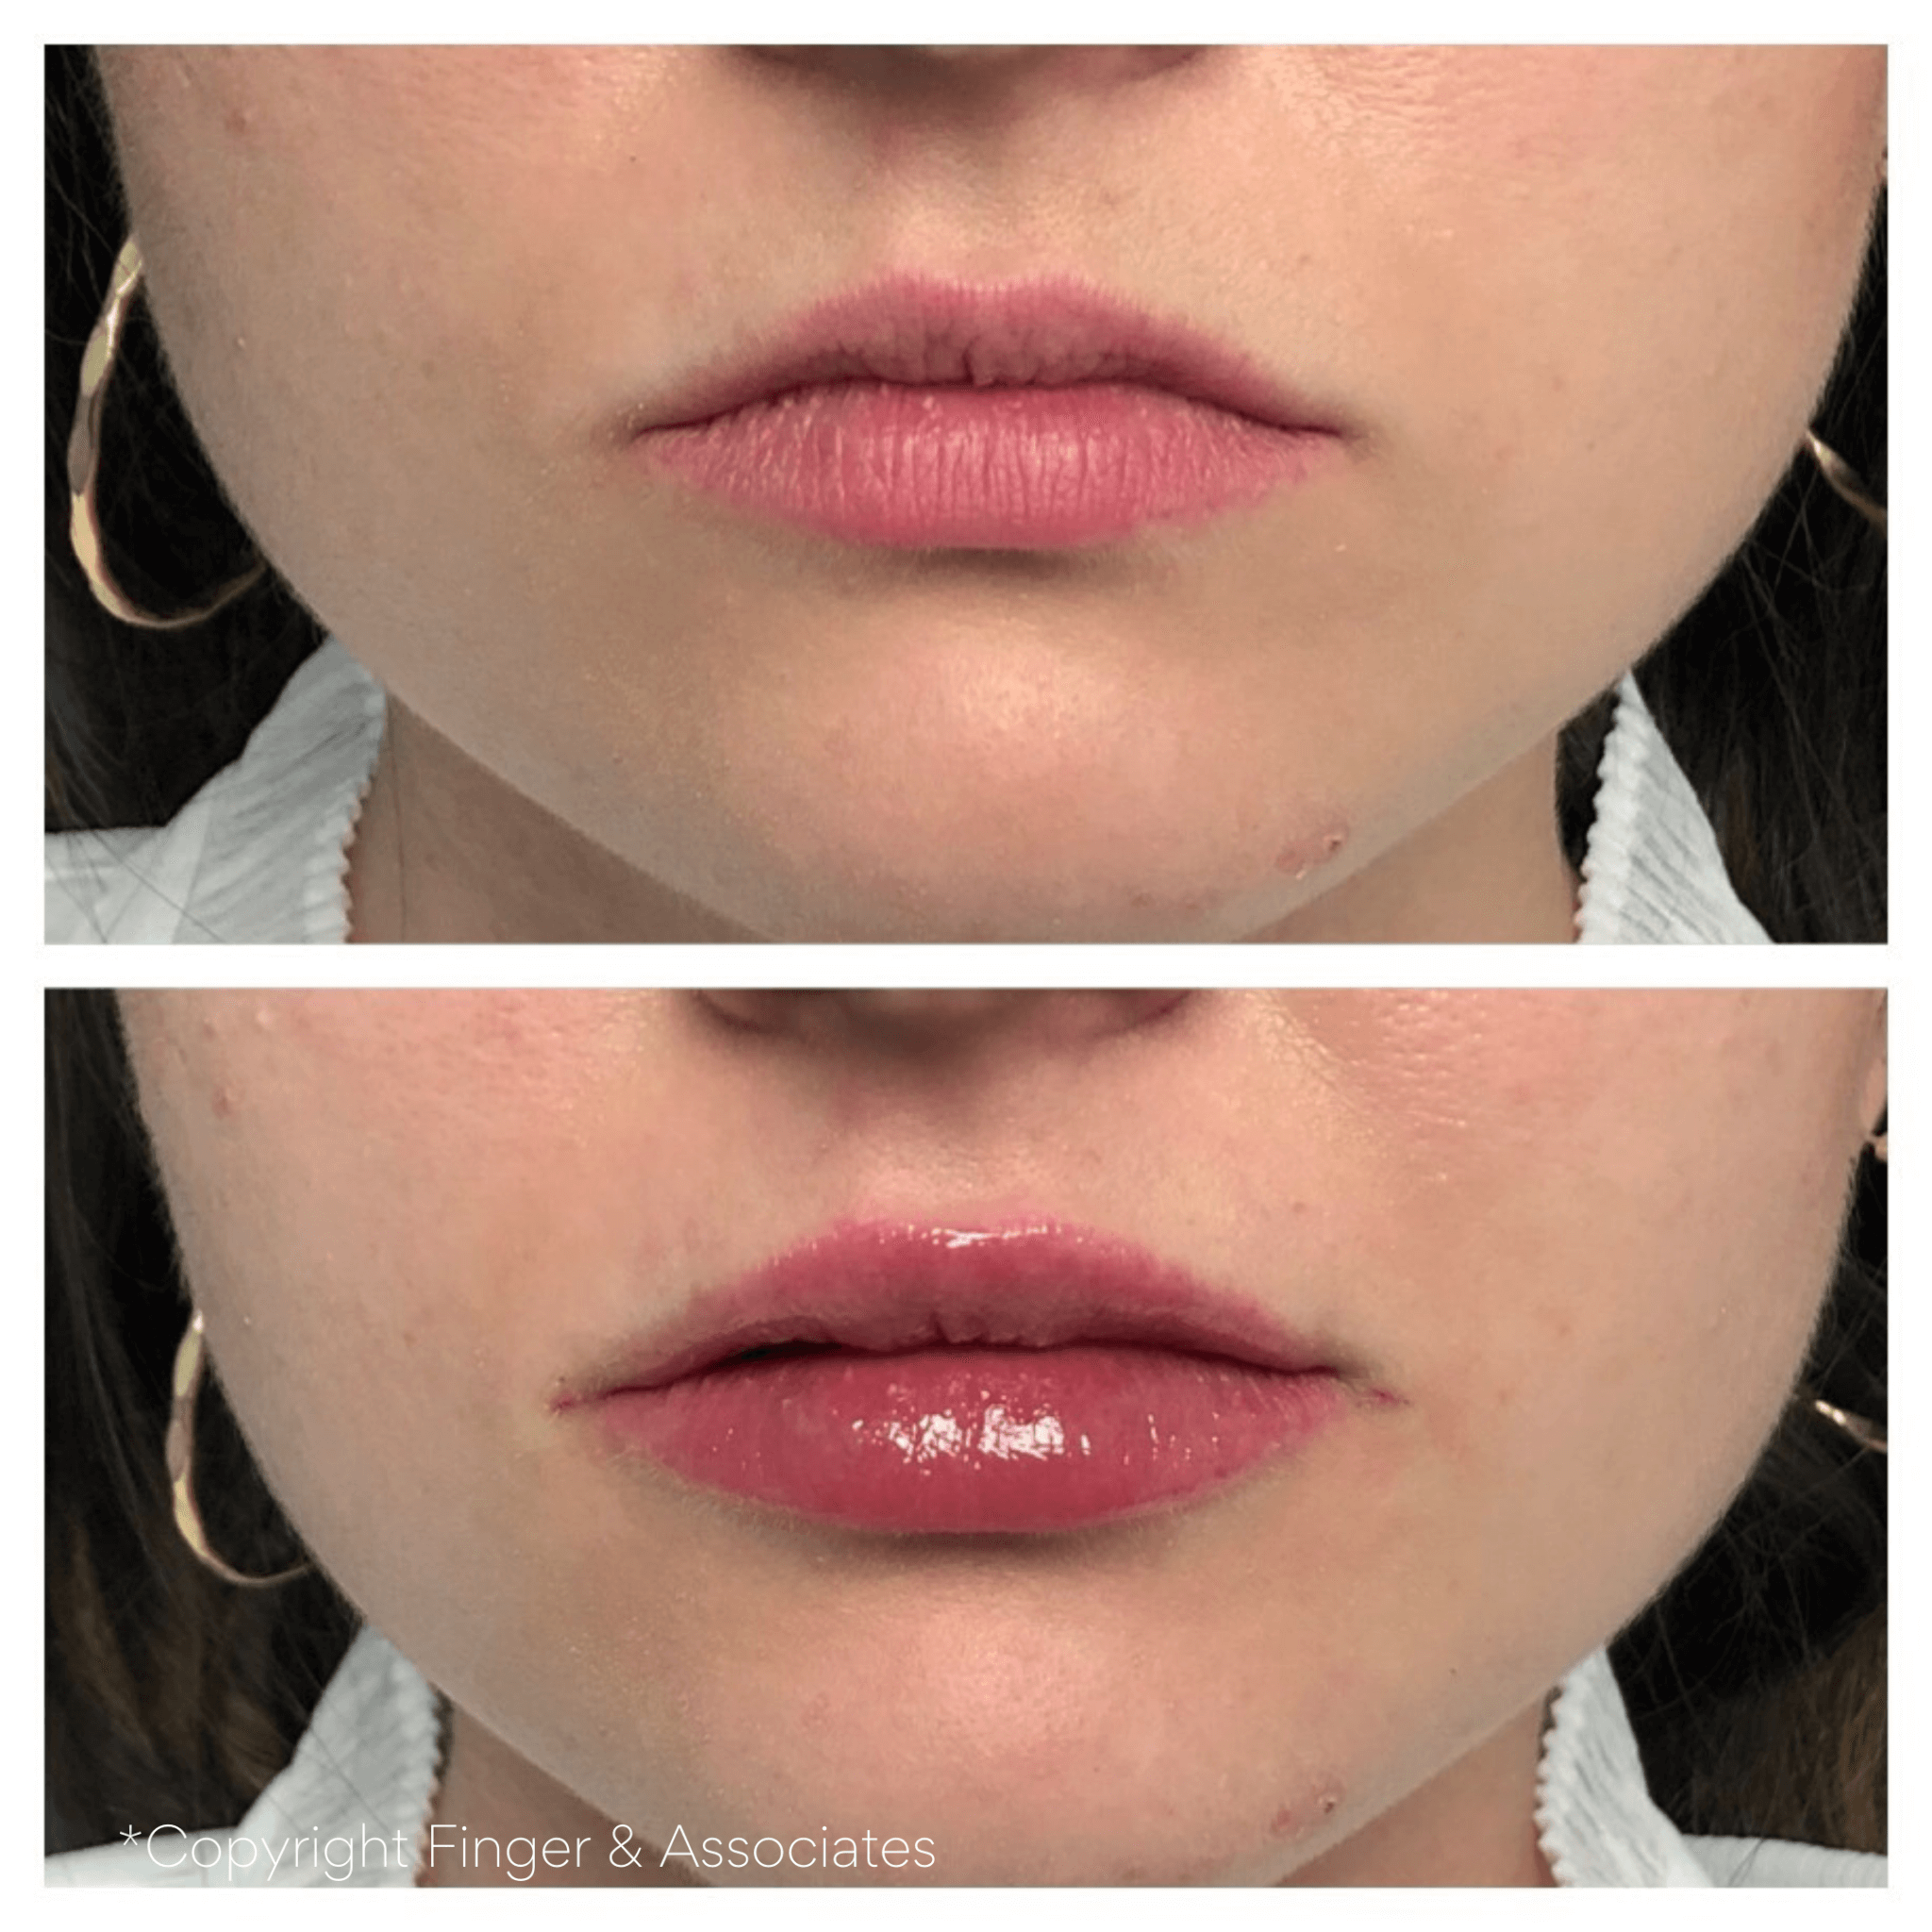 Before and after Lip Filler with Restylane Kysse the latest FDA cleared Filler for 2020.